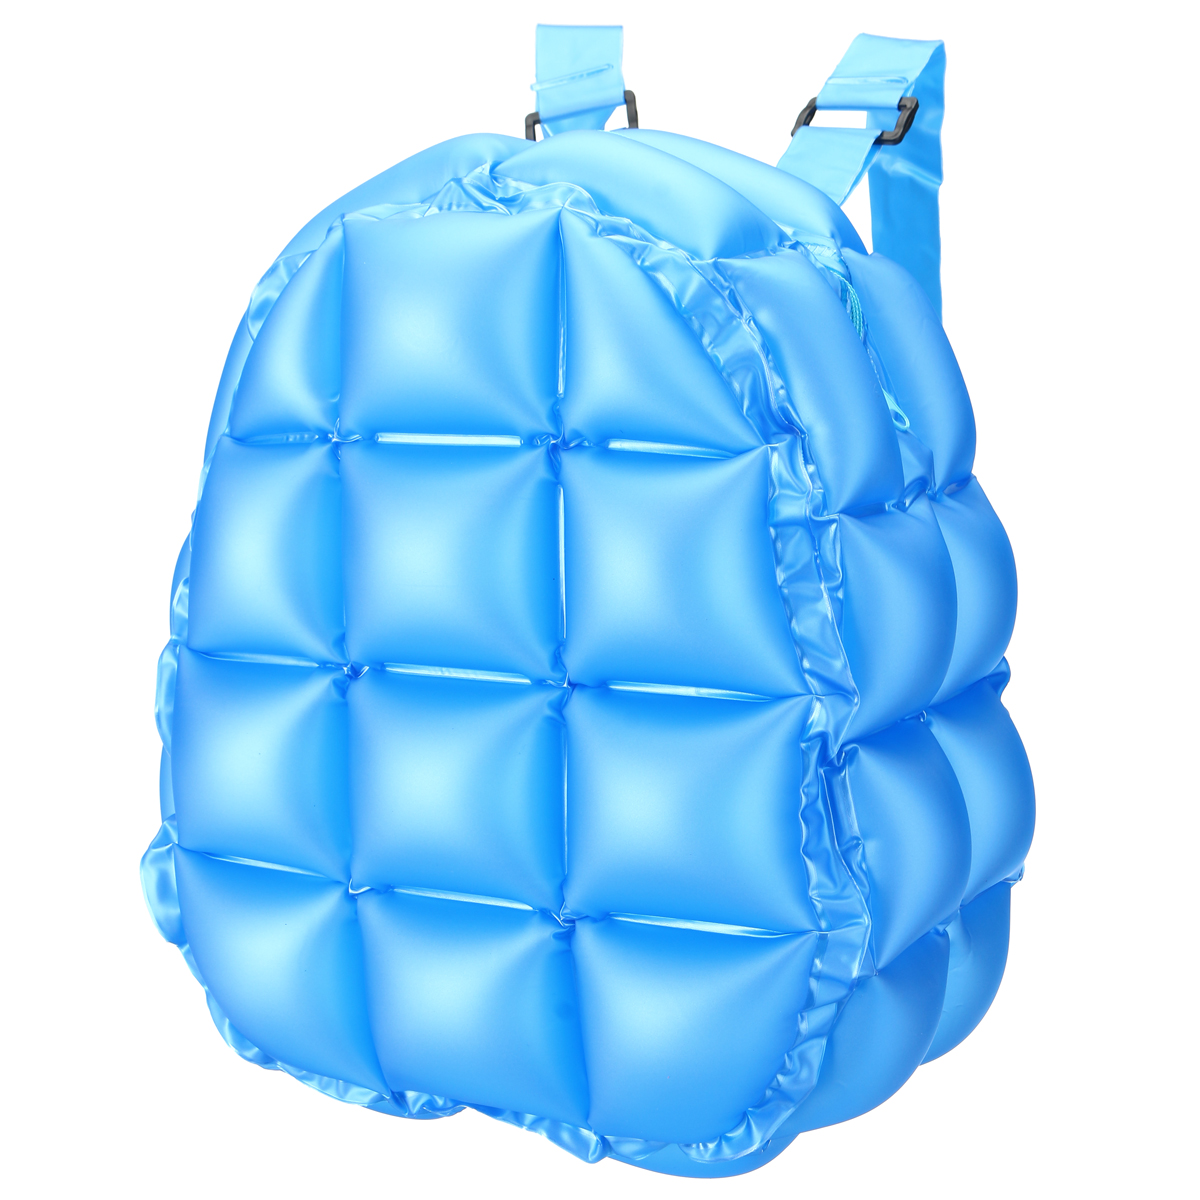 Inflatable Bubble Up Backpack 90s Retro Rave Festive Bopping E S Bags